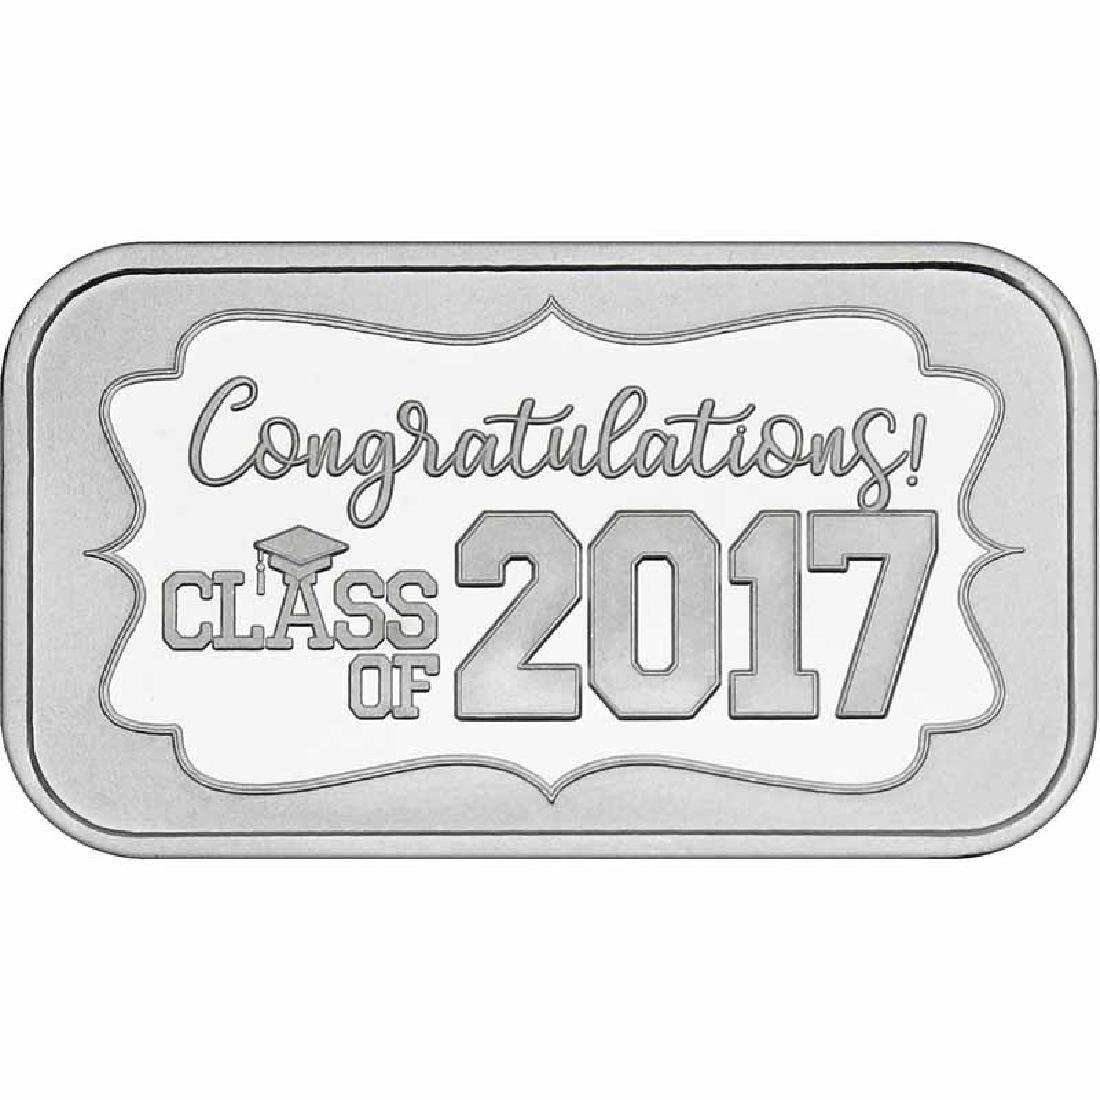 Congratulations Class Of 2017 .999 Silver 1 oz Bar